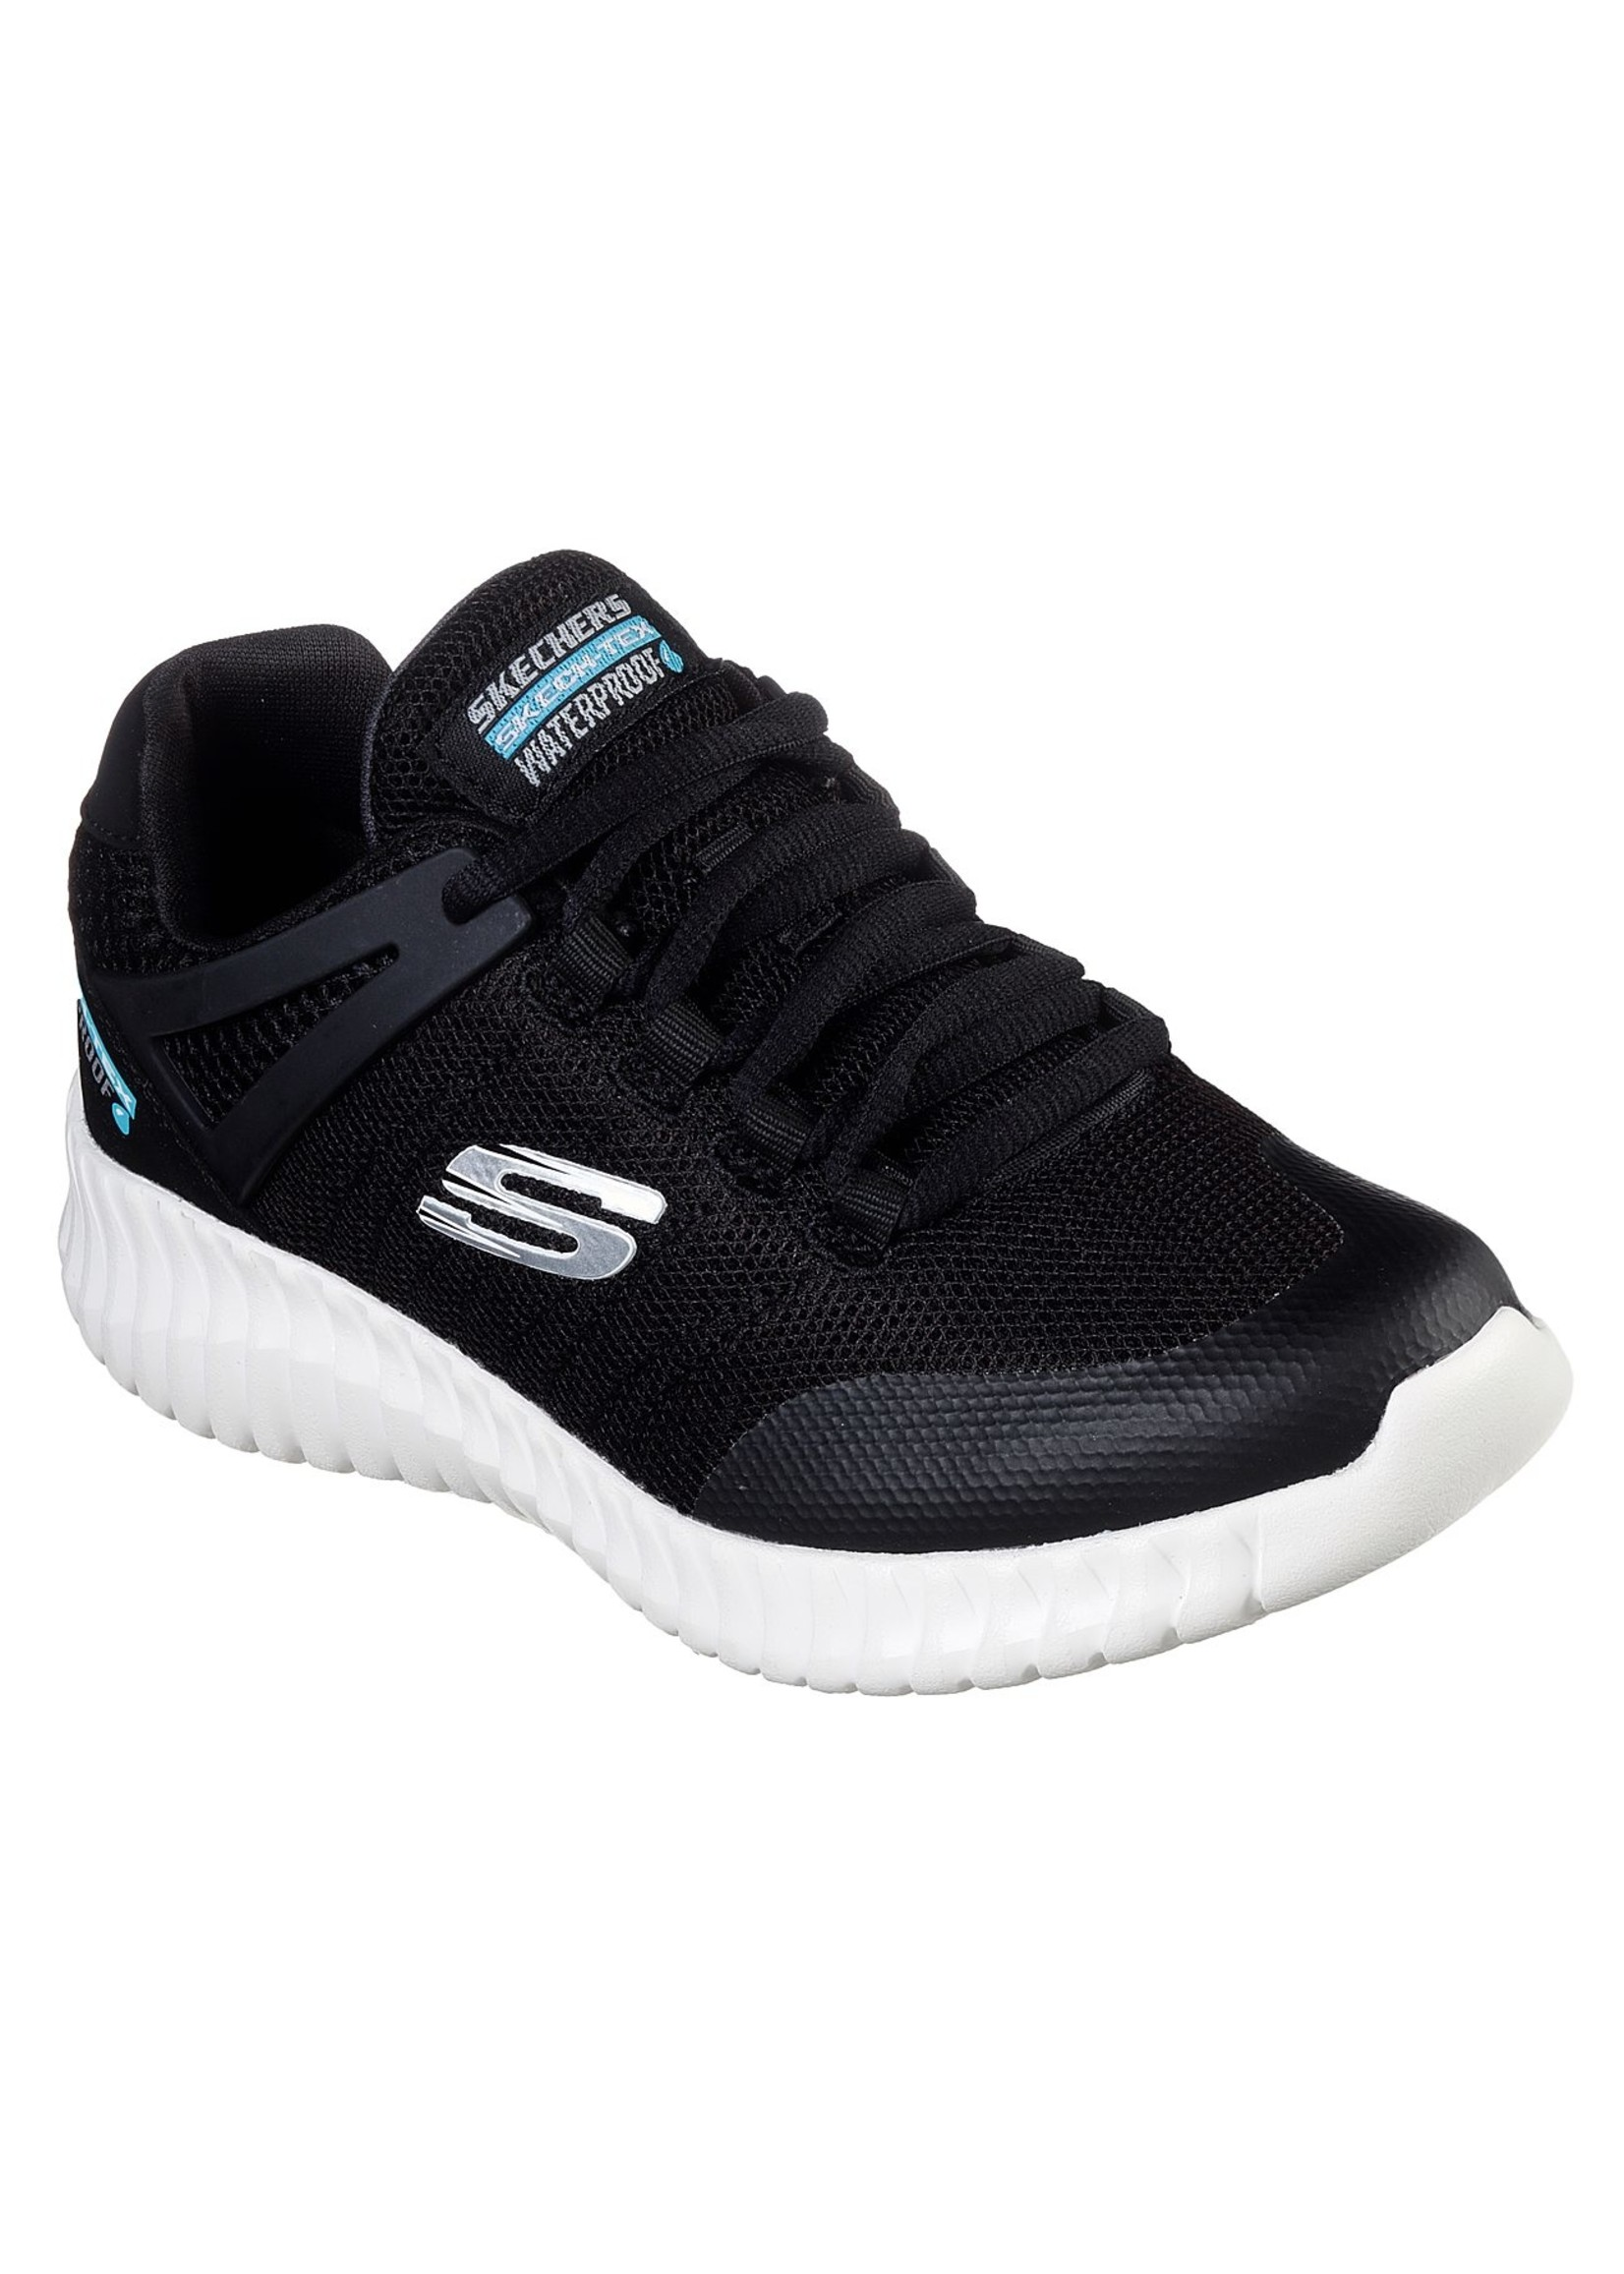 Skechers ELITE FLEX- HYDROPULSE 97893L